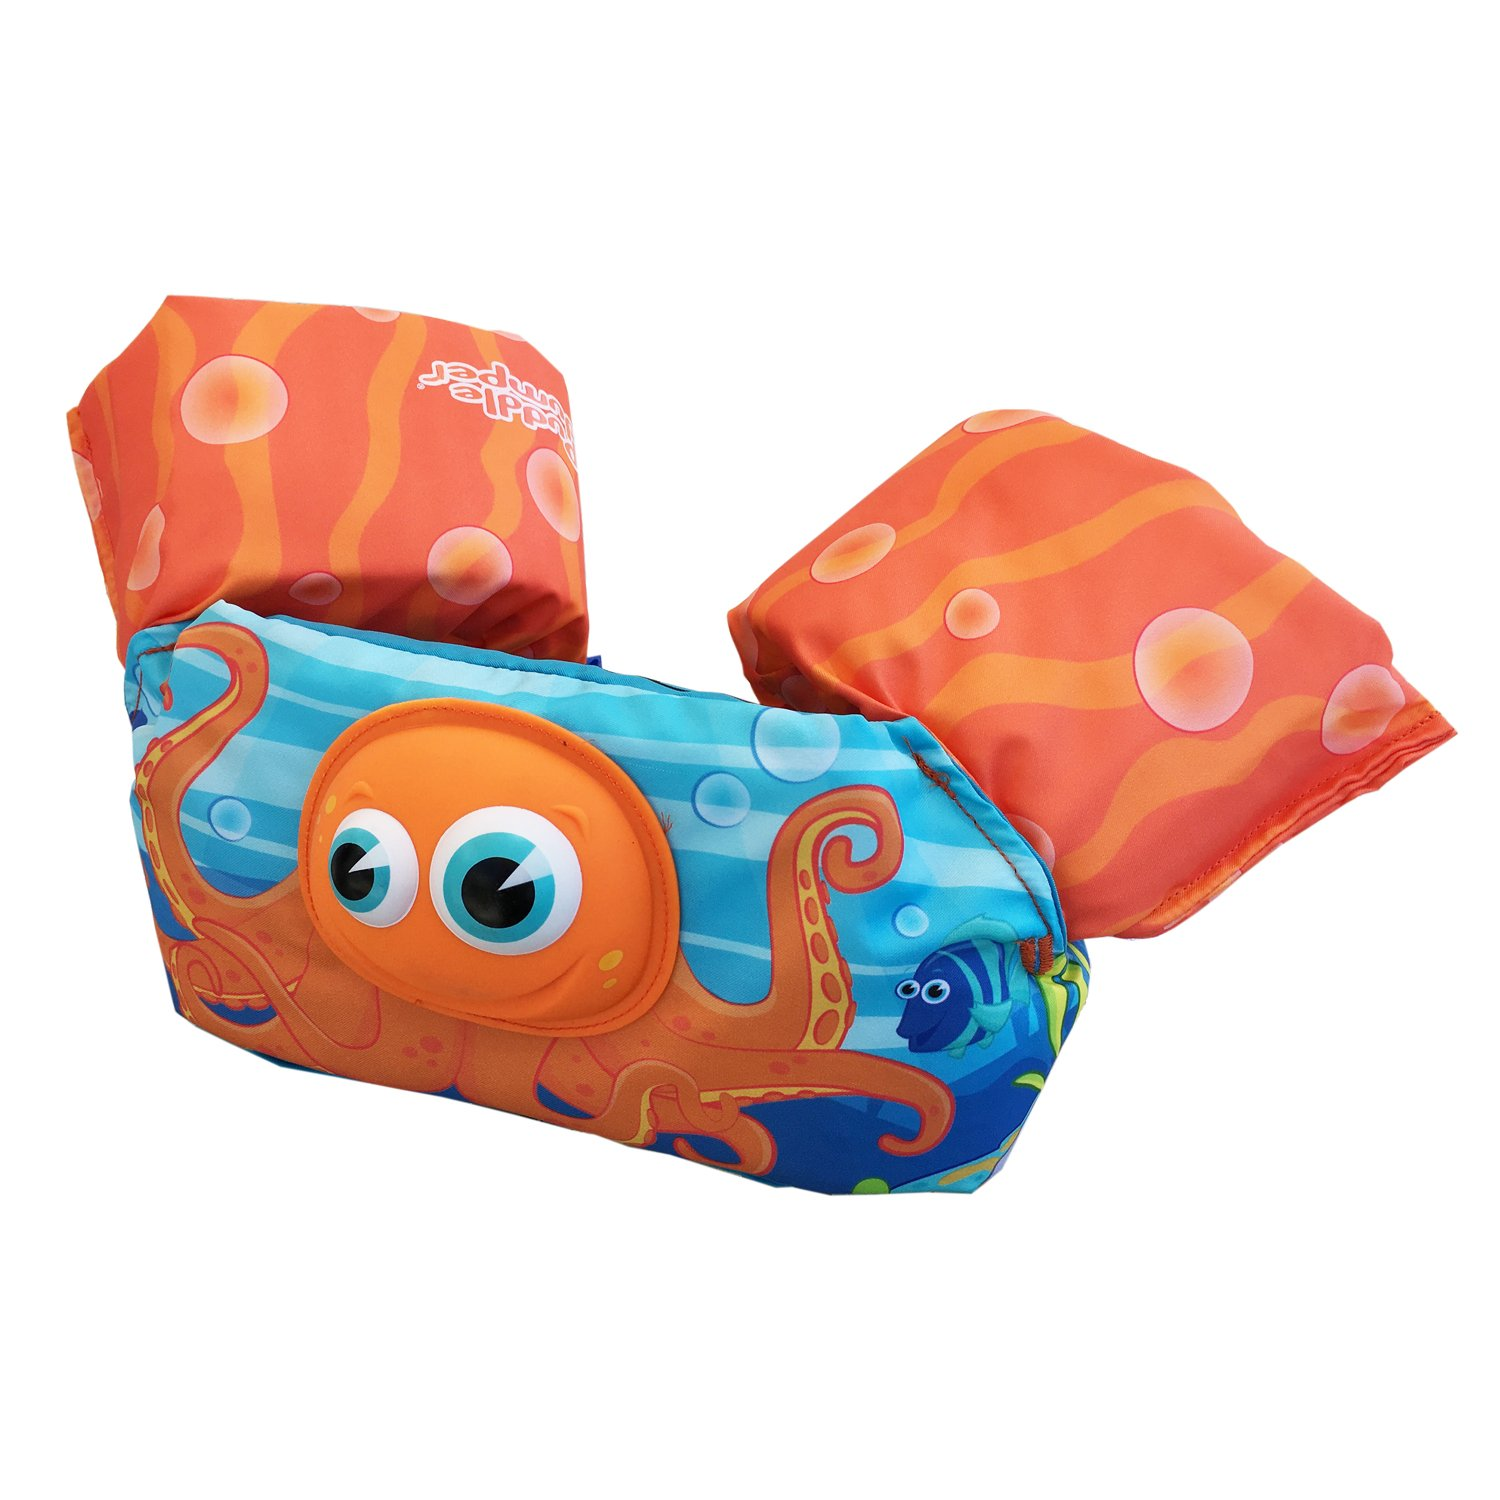 Stearns Puddle Jumper Bahamas 3D Life Jacket Orange Octopus product image